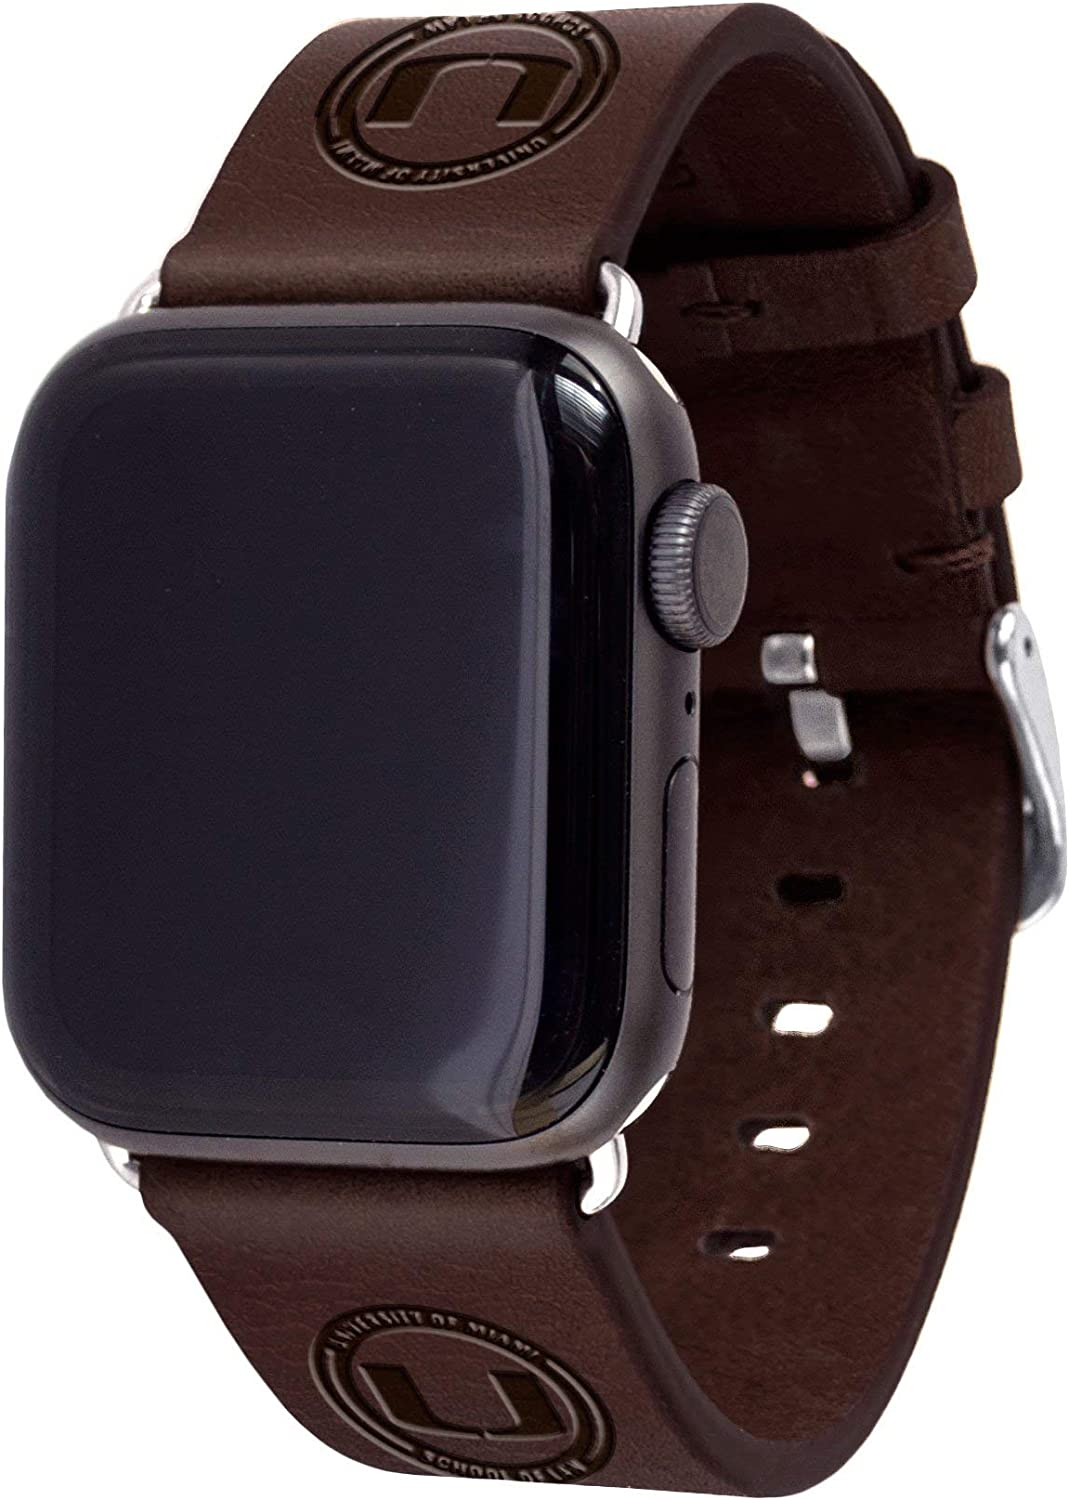 University of Miami School of Law Leather Watch Band Compatible with Apple Watch